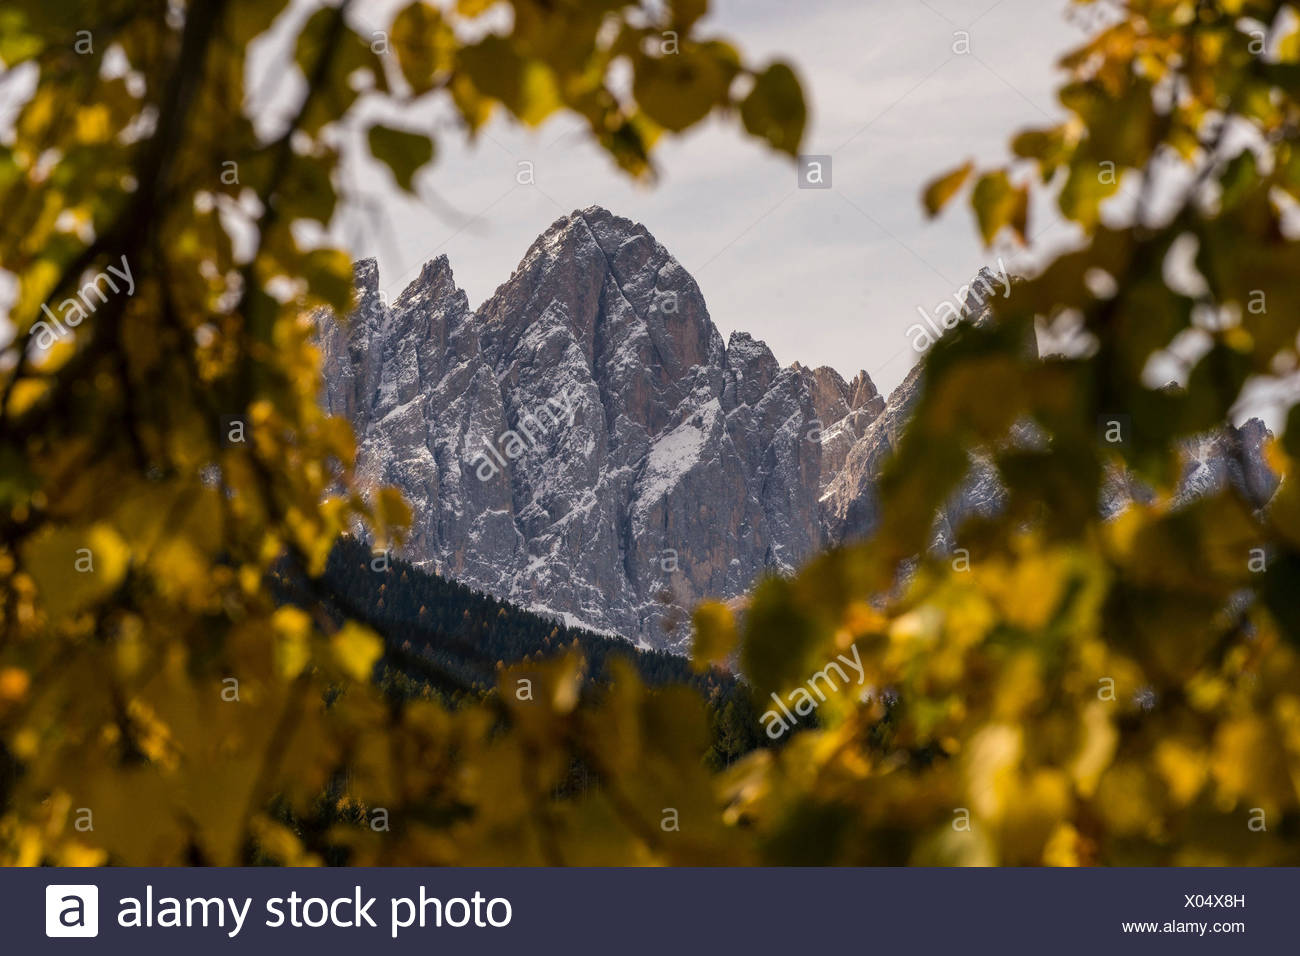 The Sass RIgas on the Odle Group, Vla di Funes, Trentino Alto Adige, ItLY, Stock Photo